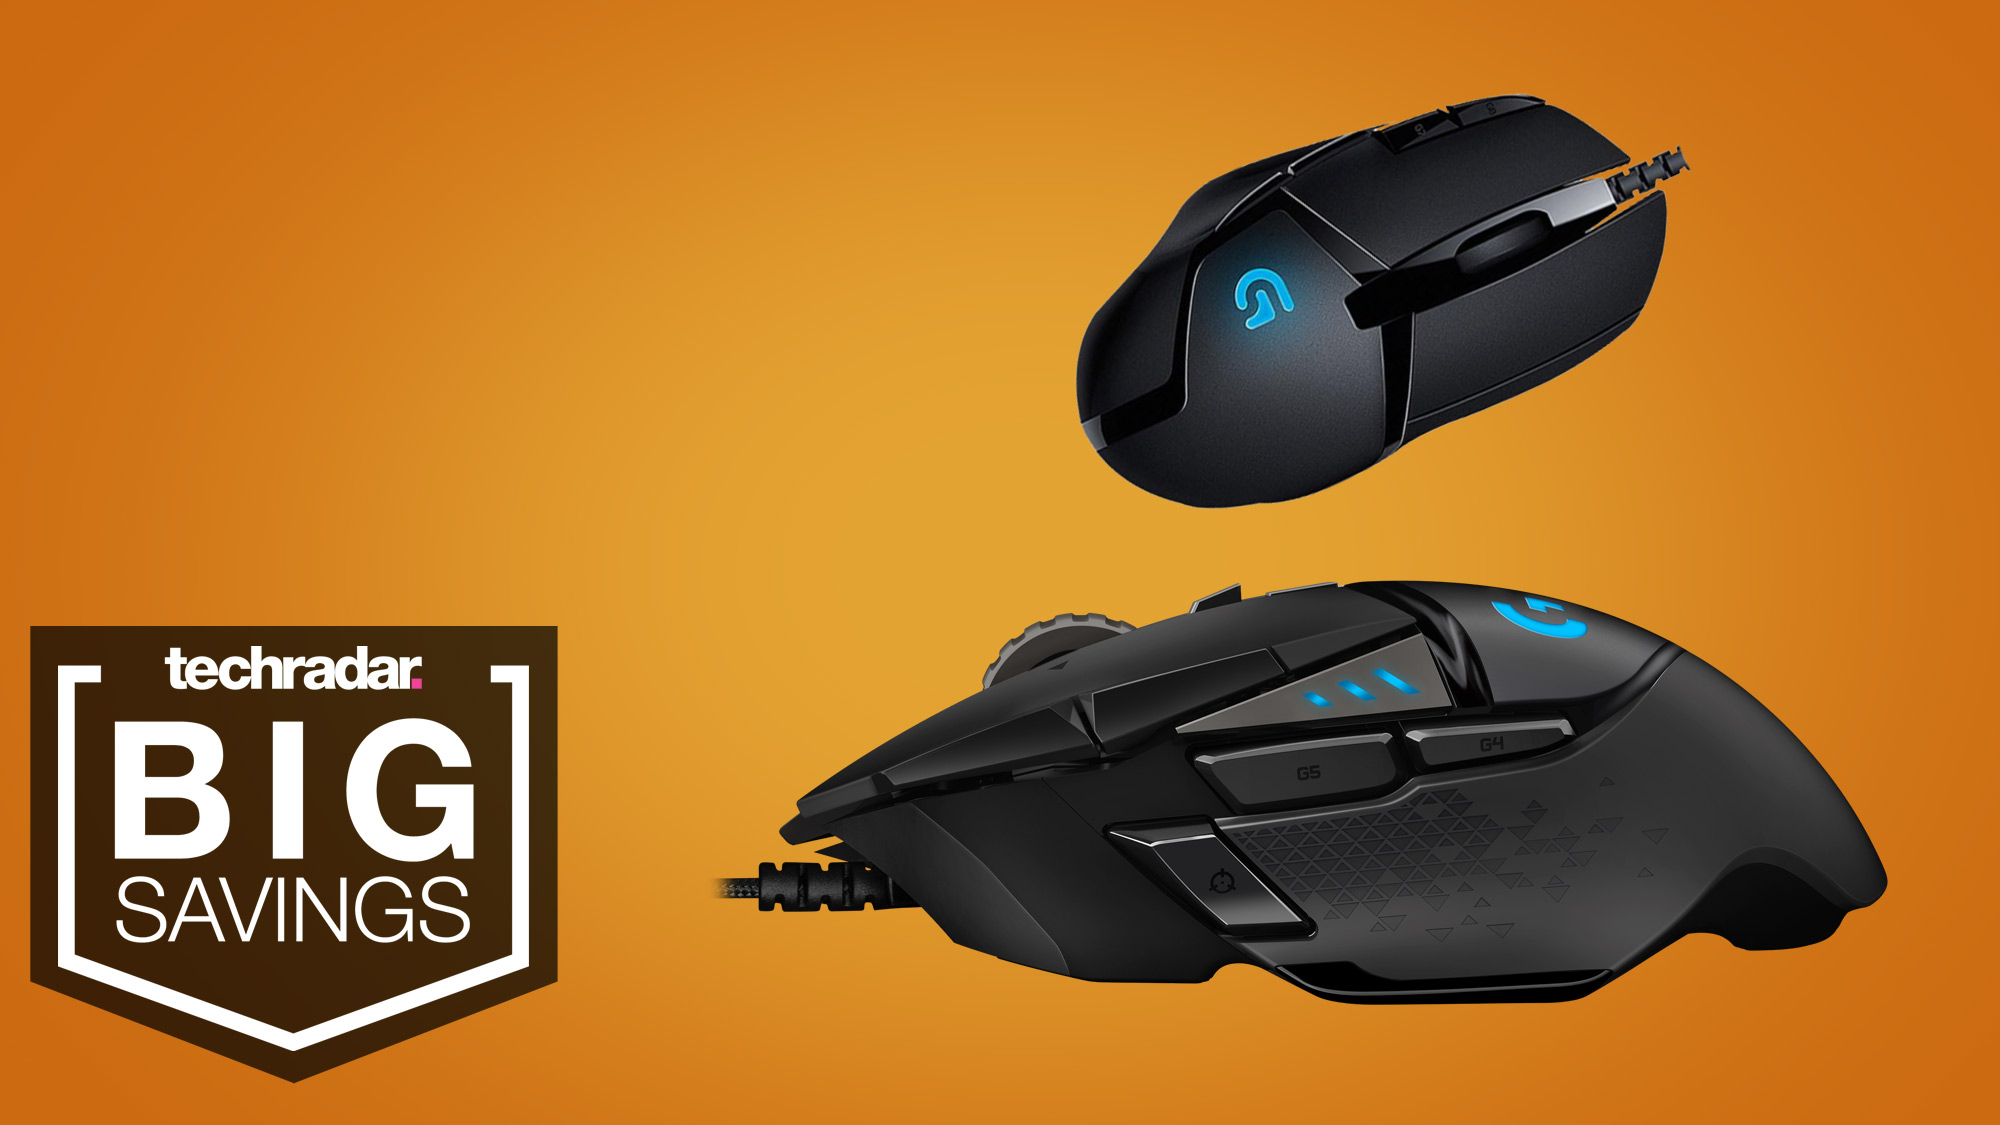 These Logitech Black Friday Gaming Mouse Deals Are On Fire Techradar